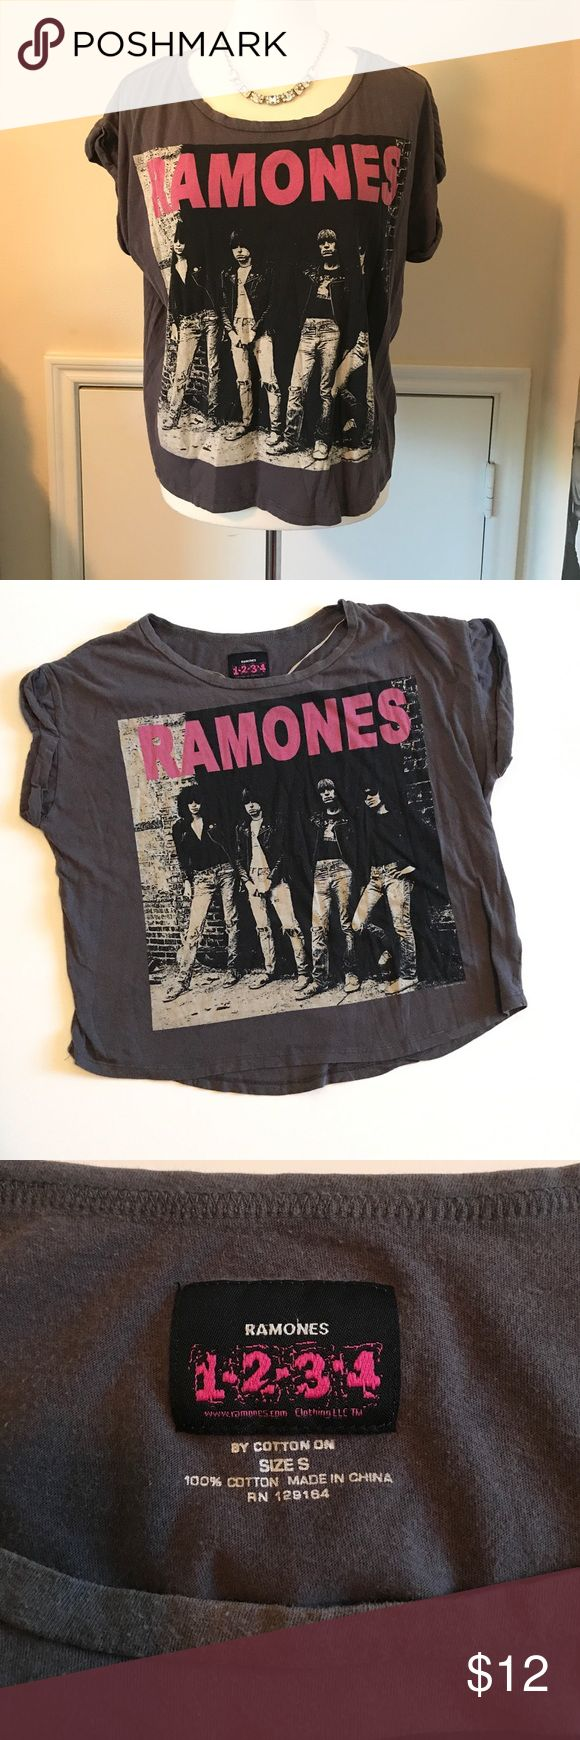 Ramones shirt by Cotton on Very comfortable shirt in excellent conditions. 100% cotton. Cotton On Tops Tees - Short Sleeve